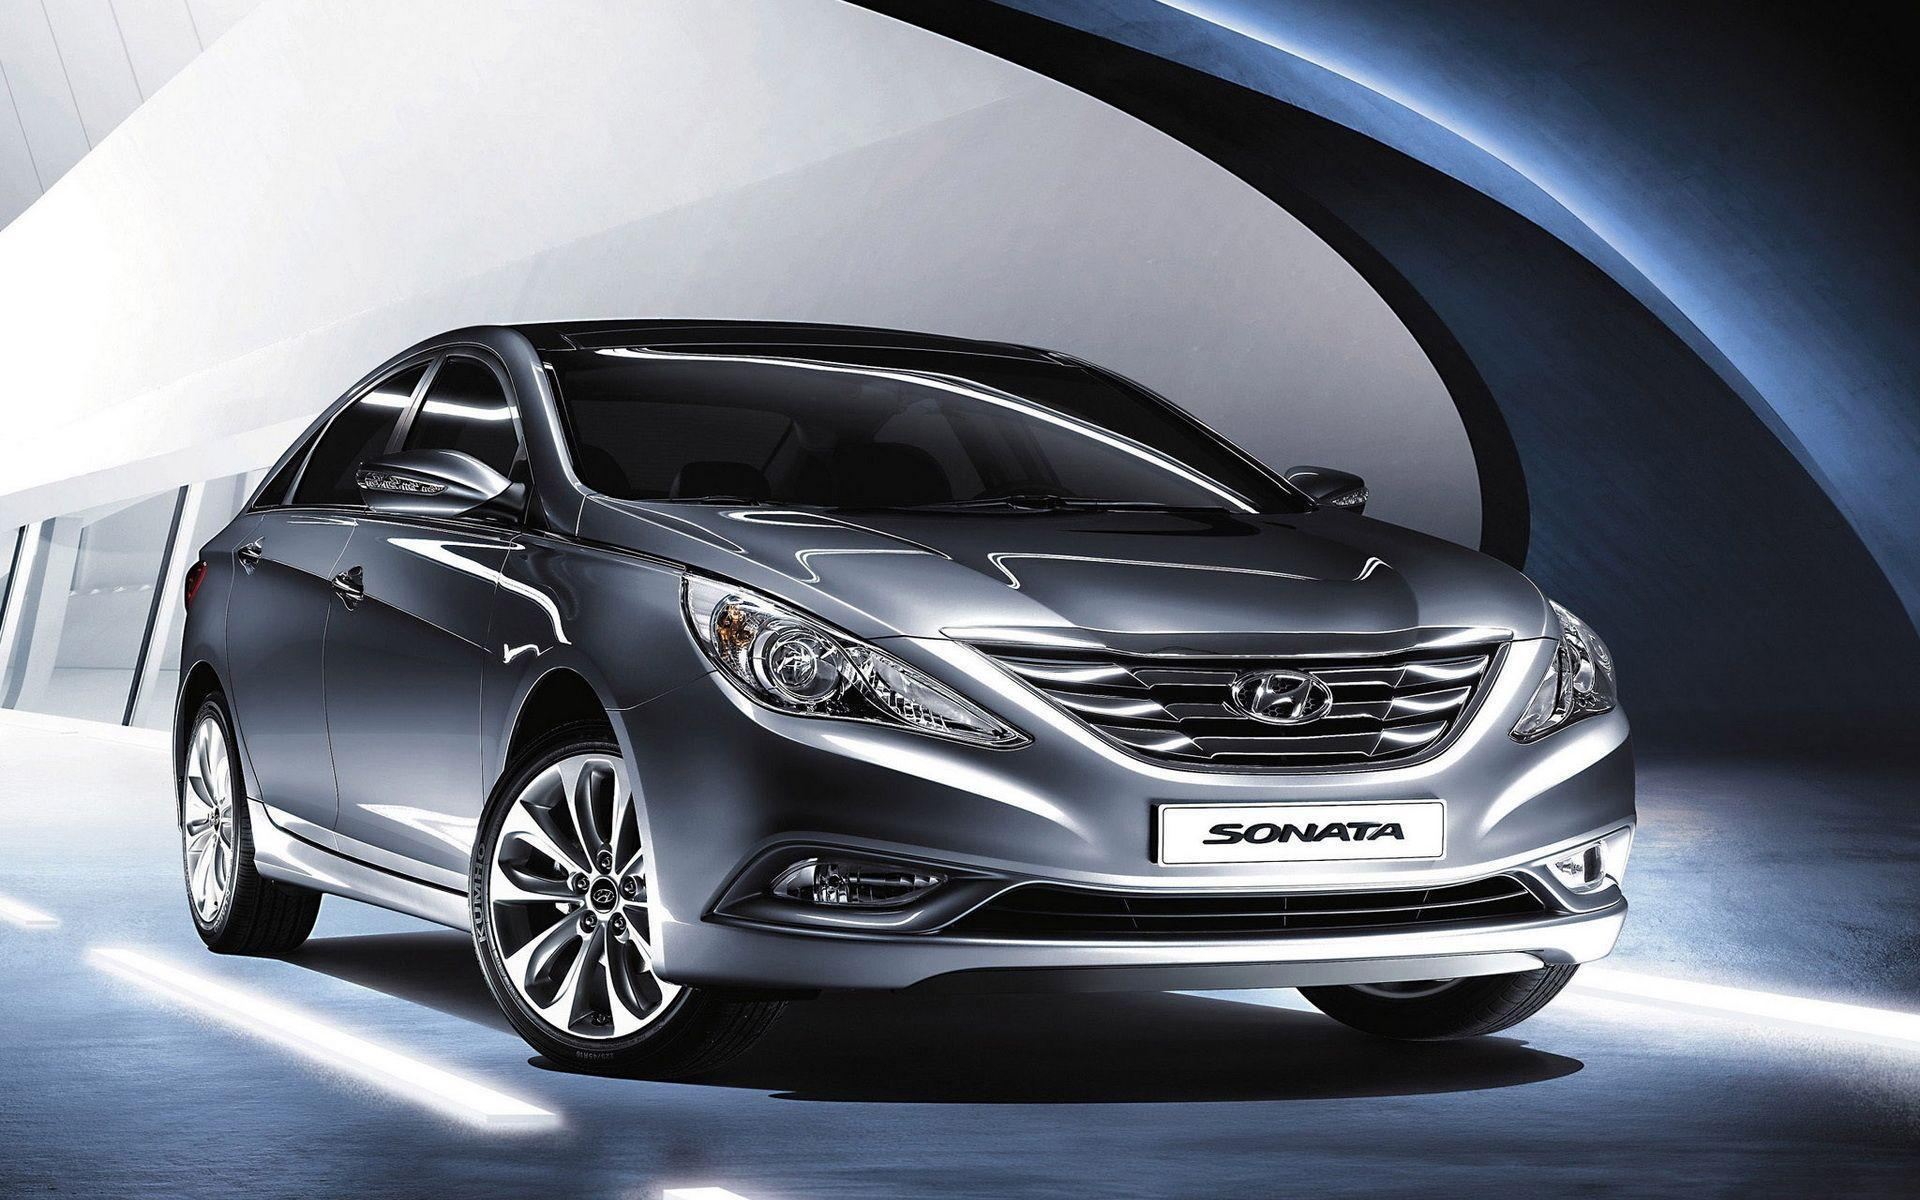 Hyundai Genesis wallpapers and image